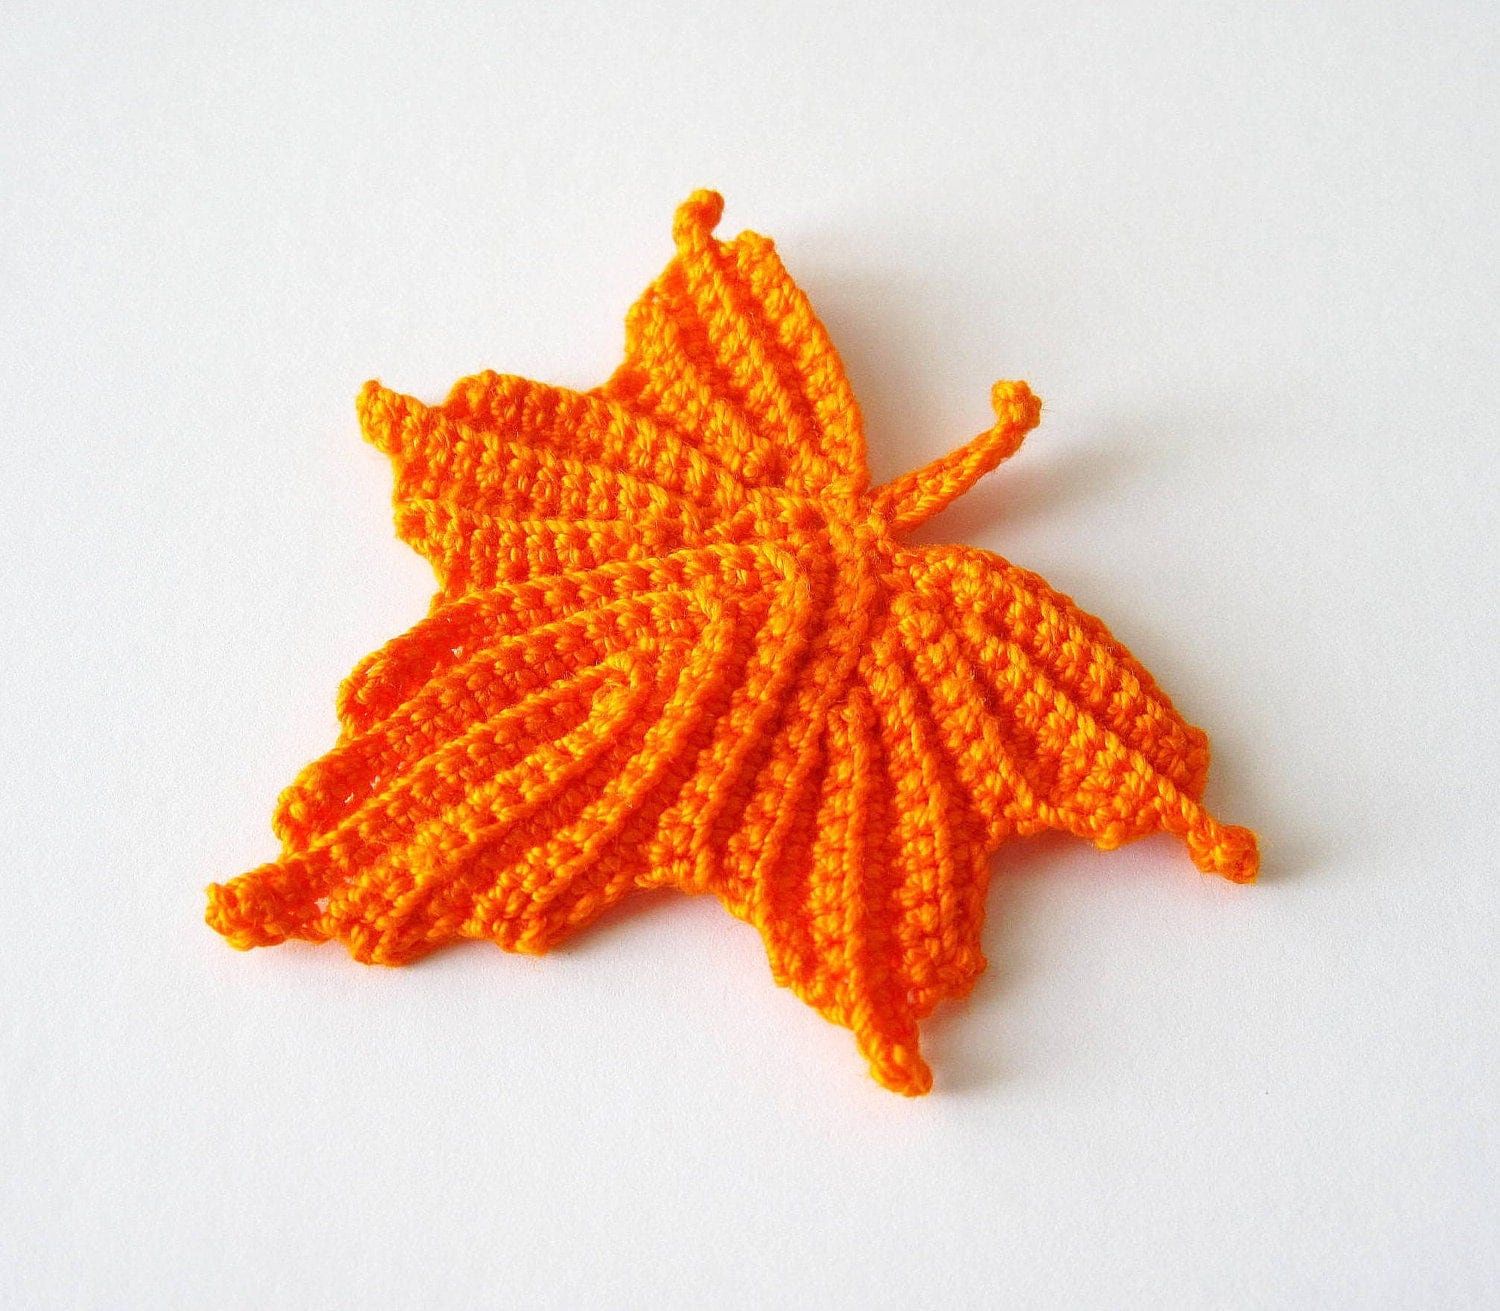 Crocheted Maple Leaf in Orange